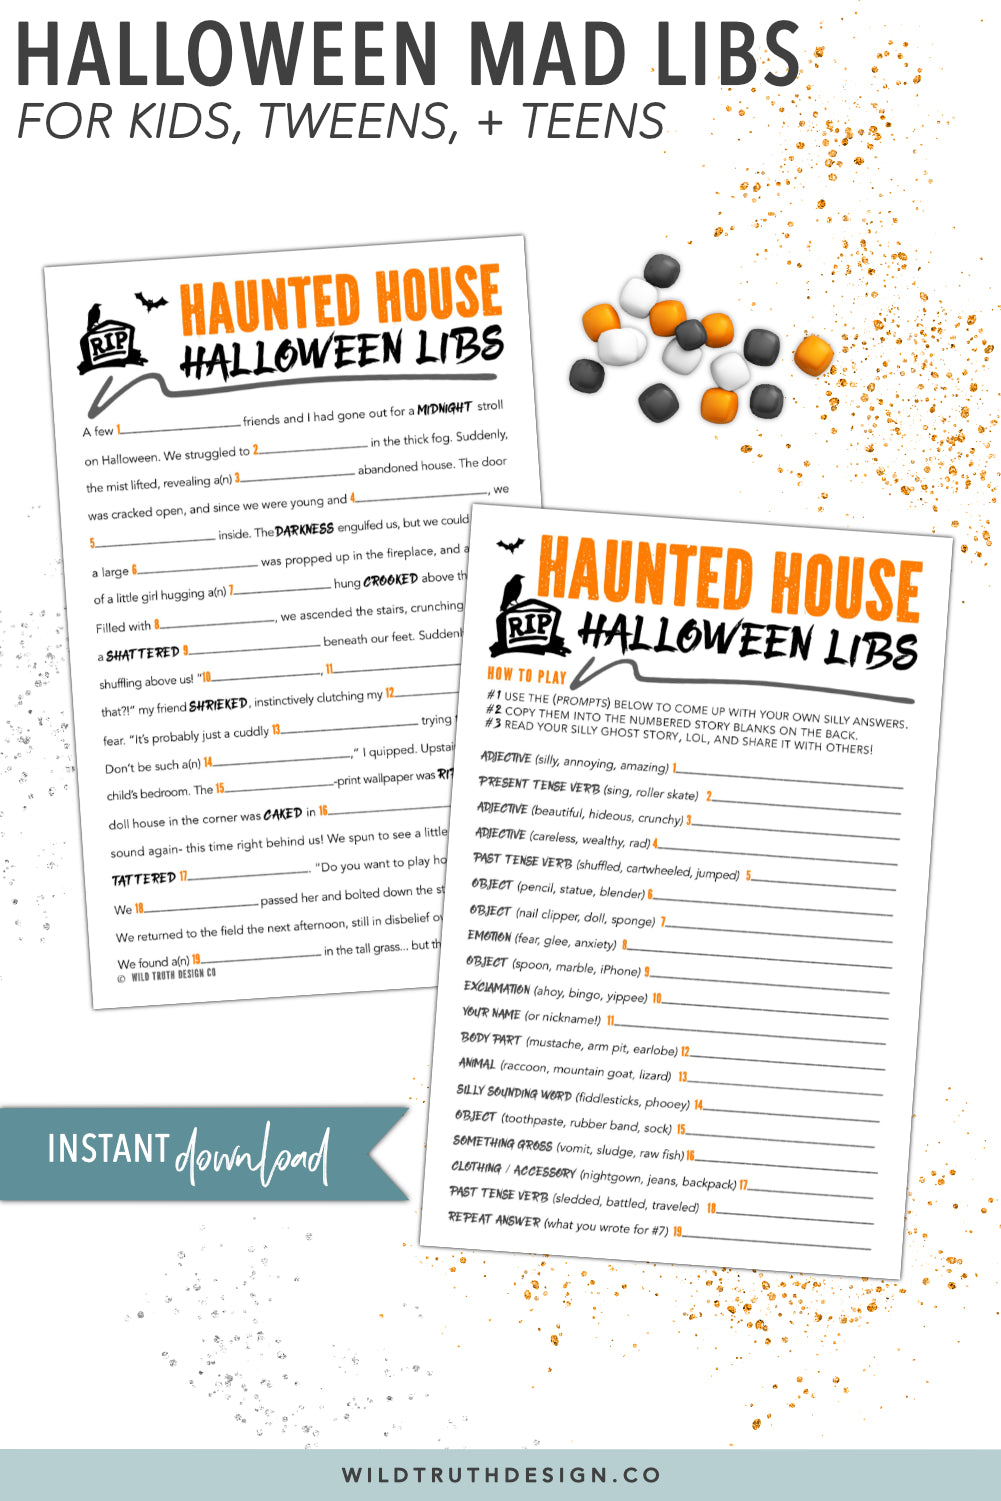 Spooky Halloween Mad Libs For Kids, Tweens, Teens